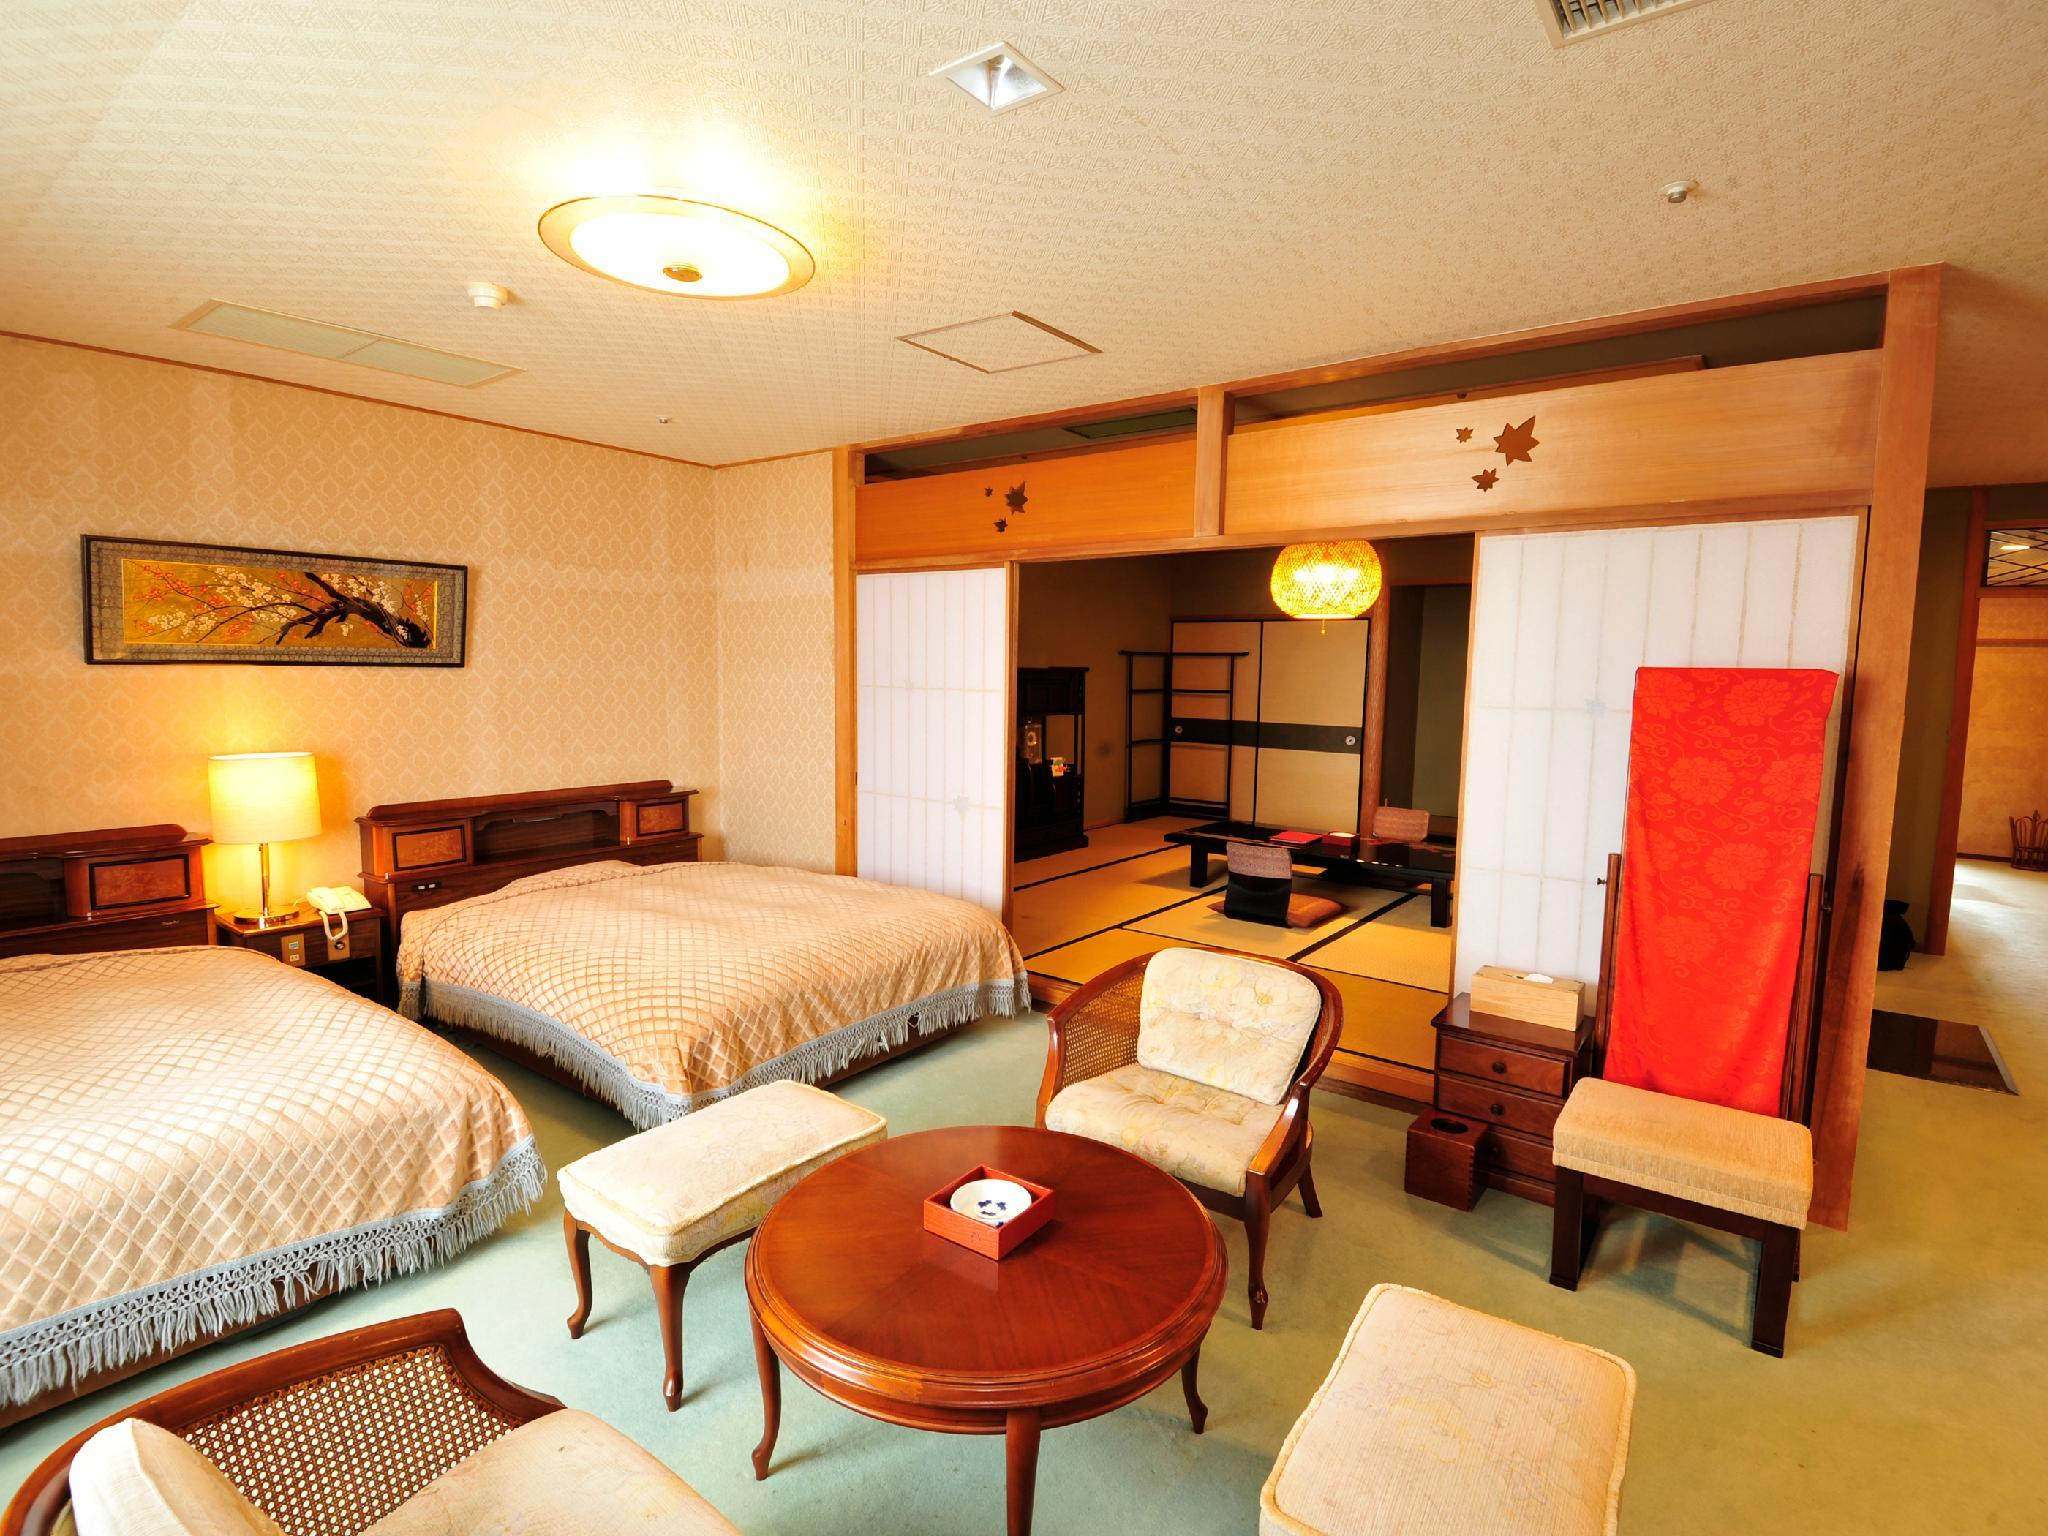 Standard Japanese Western Style Room Type A for 4 People